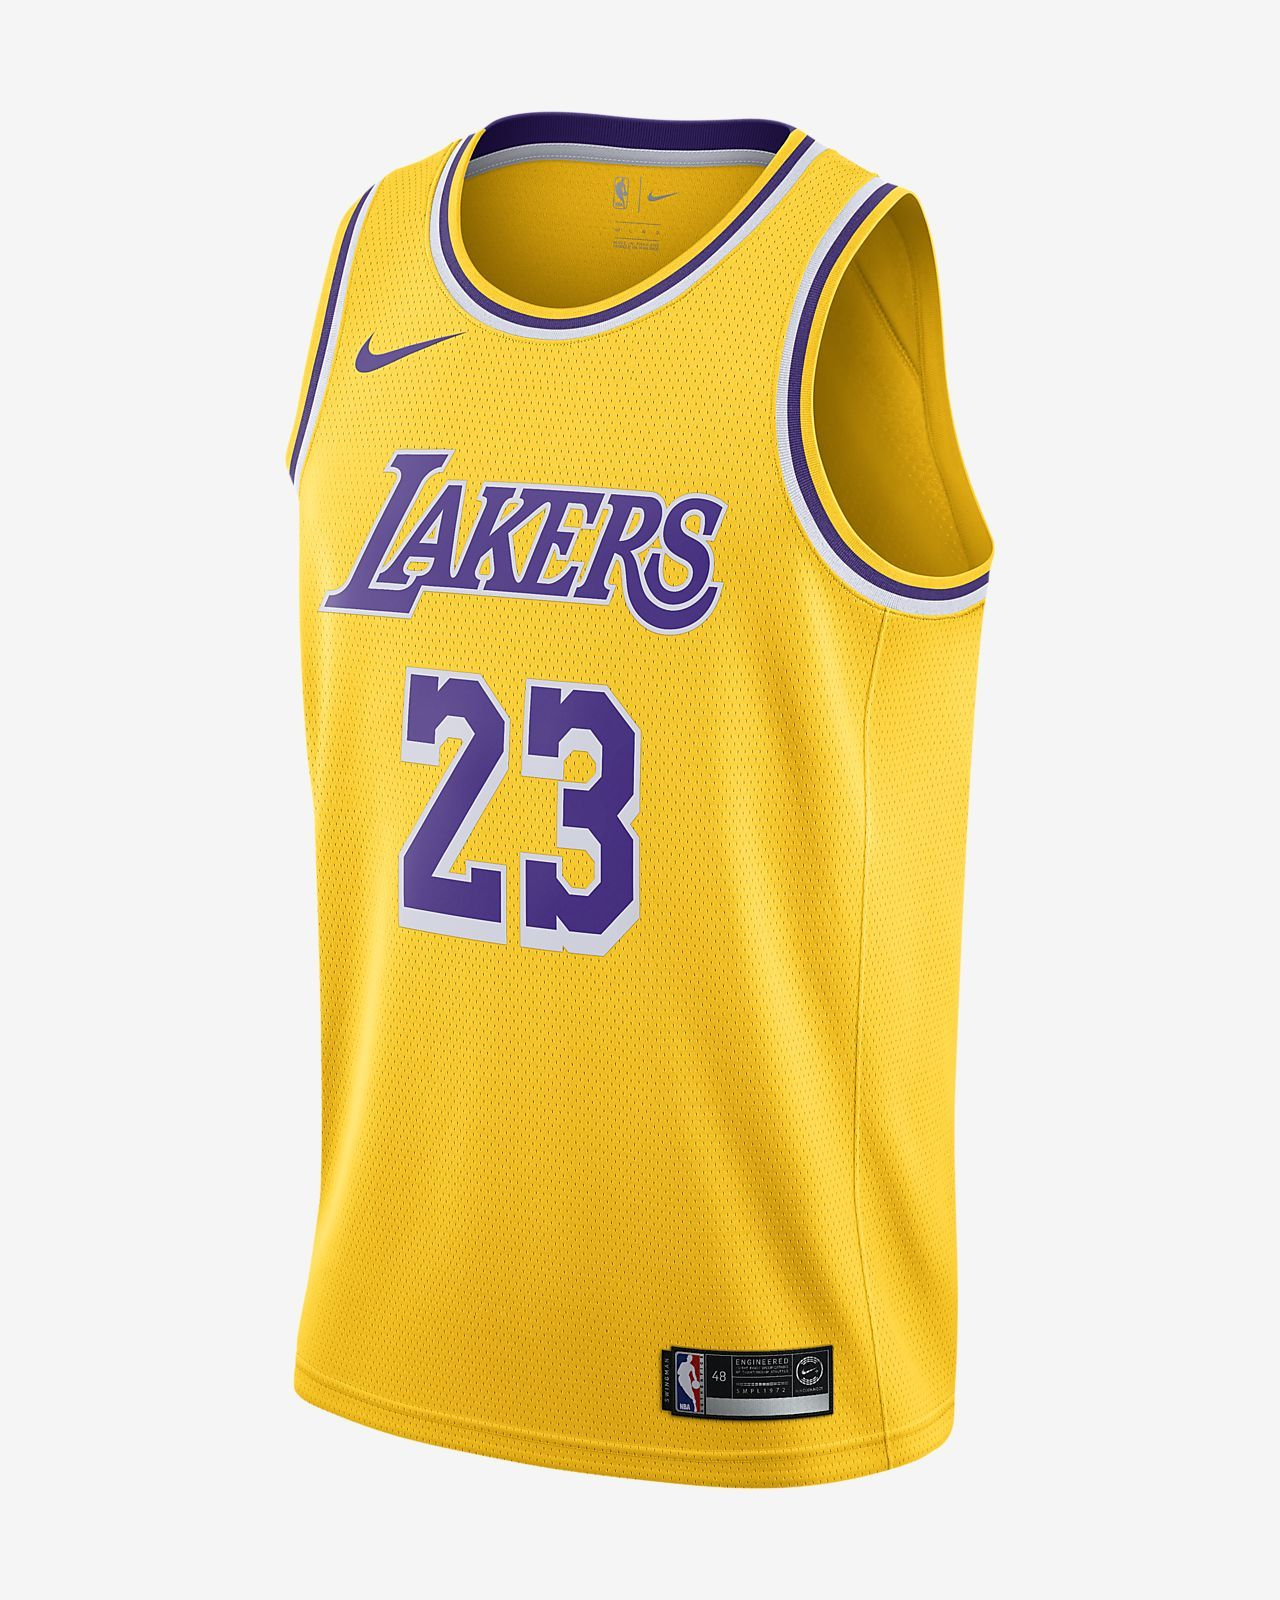 Lakers Icon Edition 2020 Nike Nba Swingman Jersey Nike Com Nba Swingman Jersey Lebron James Lakers Bryant Lakers